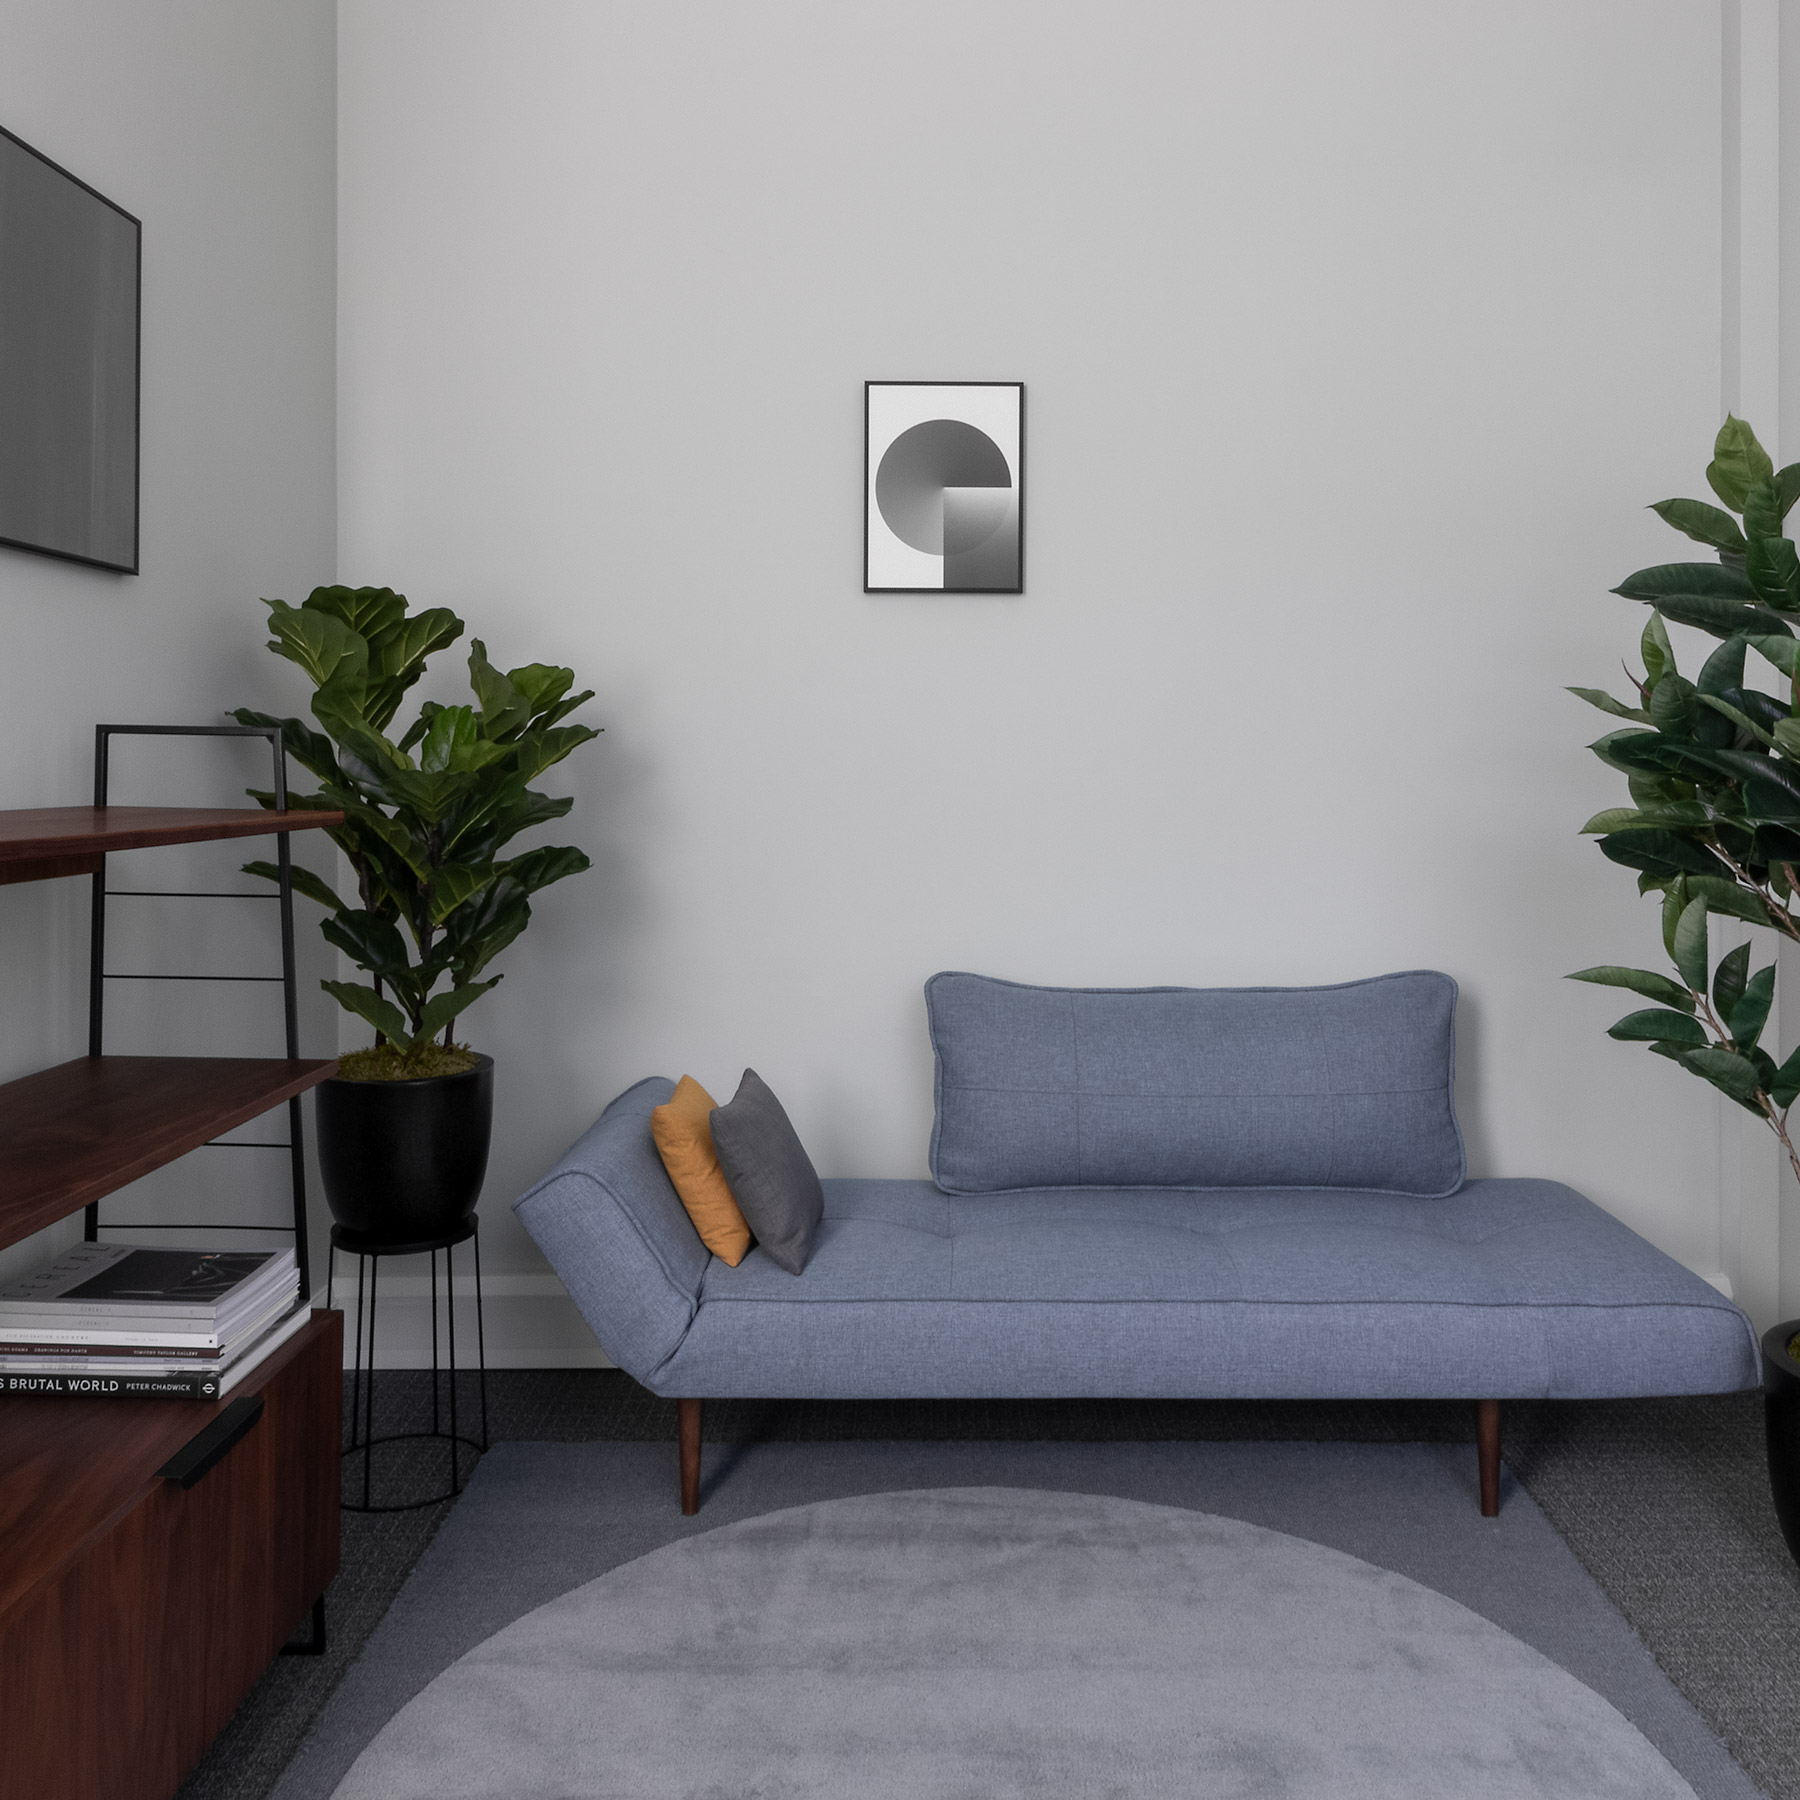 Psychotherapy room with sage grey walls, blue grey daybed, walnut cabinet, abstract geometric art and rug, ficus plant